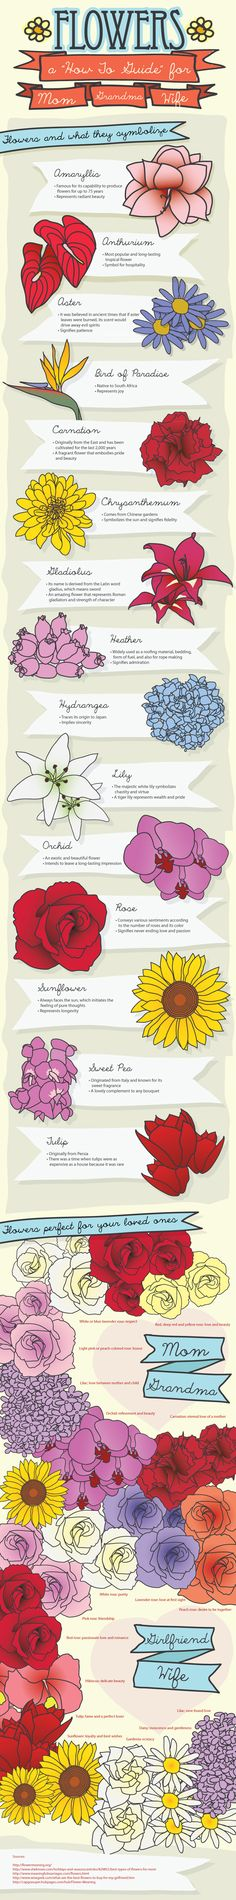 The Flowers How-To guide. This is good for all guys to keep handy!